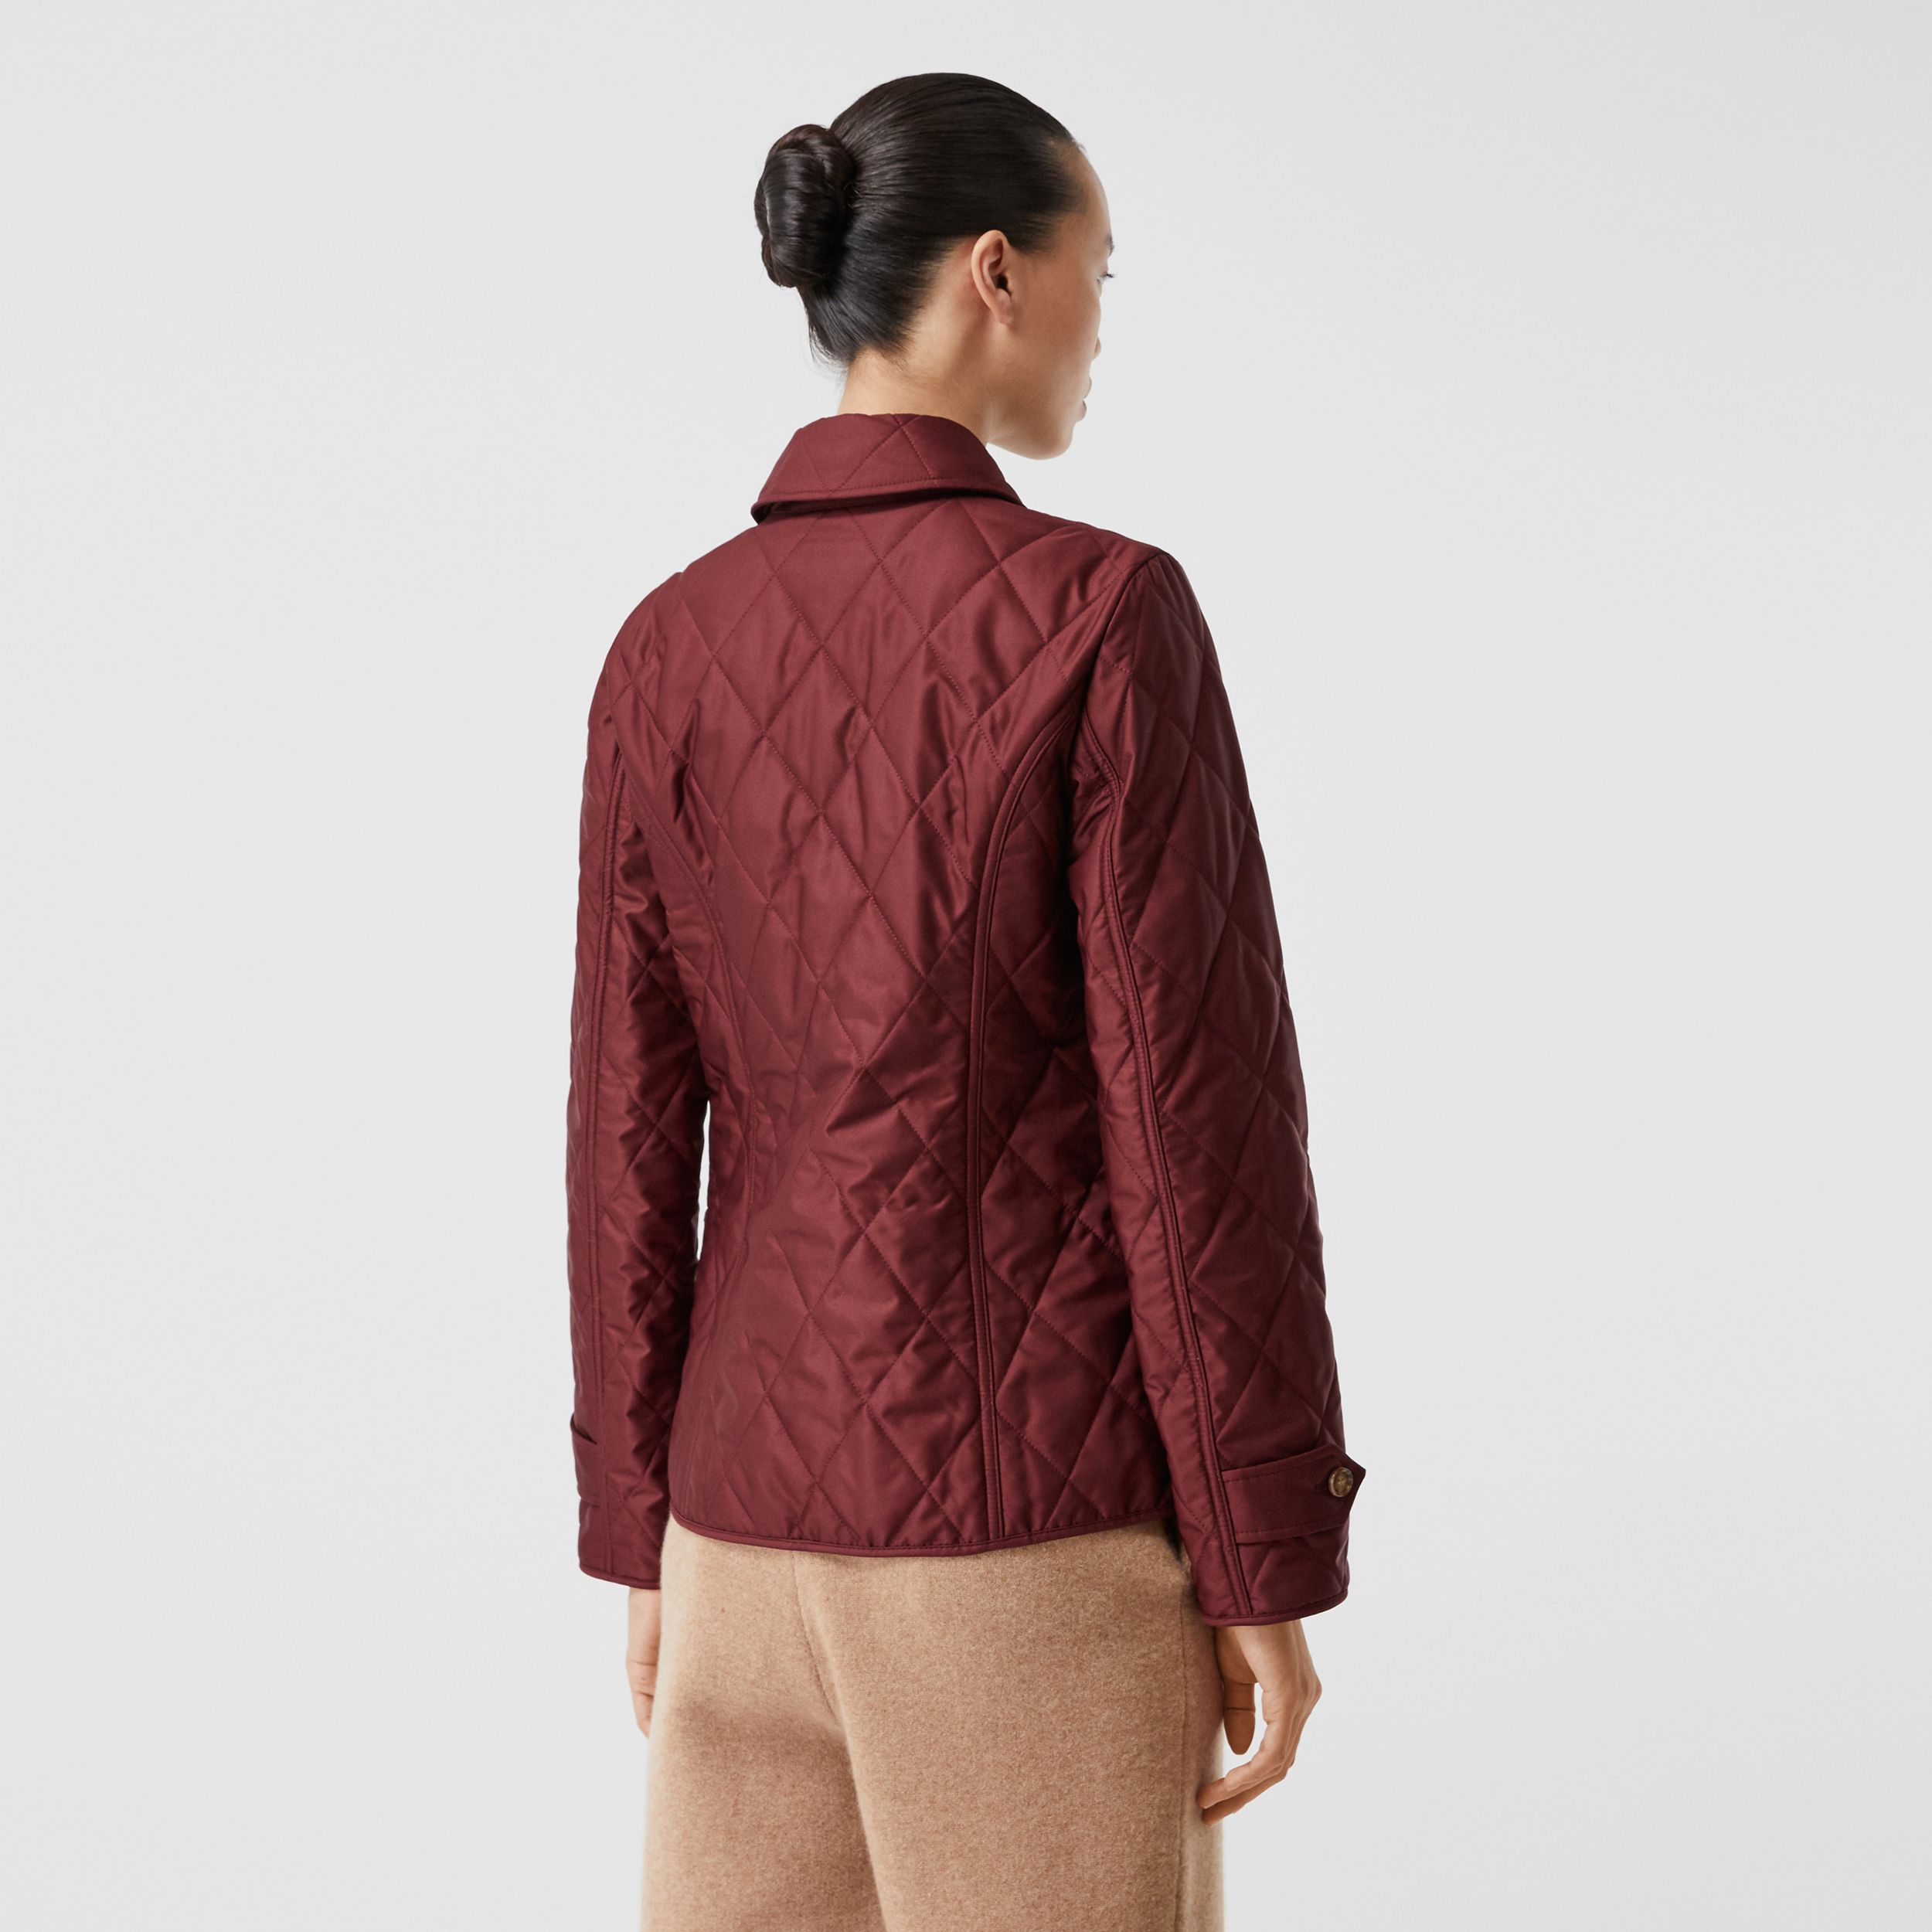 Diamond Quilted Thermoregulated Jacket in Deep Claret - Women | Burberry - 3